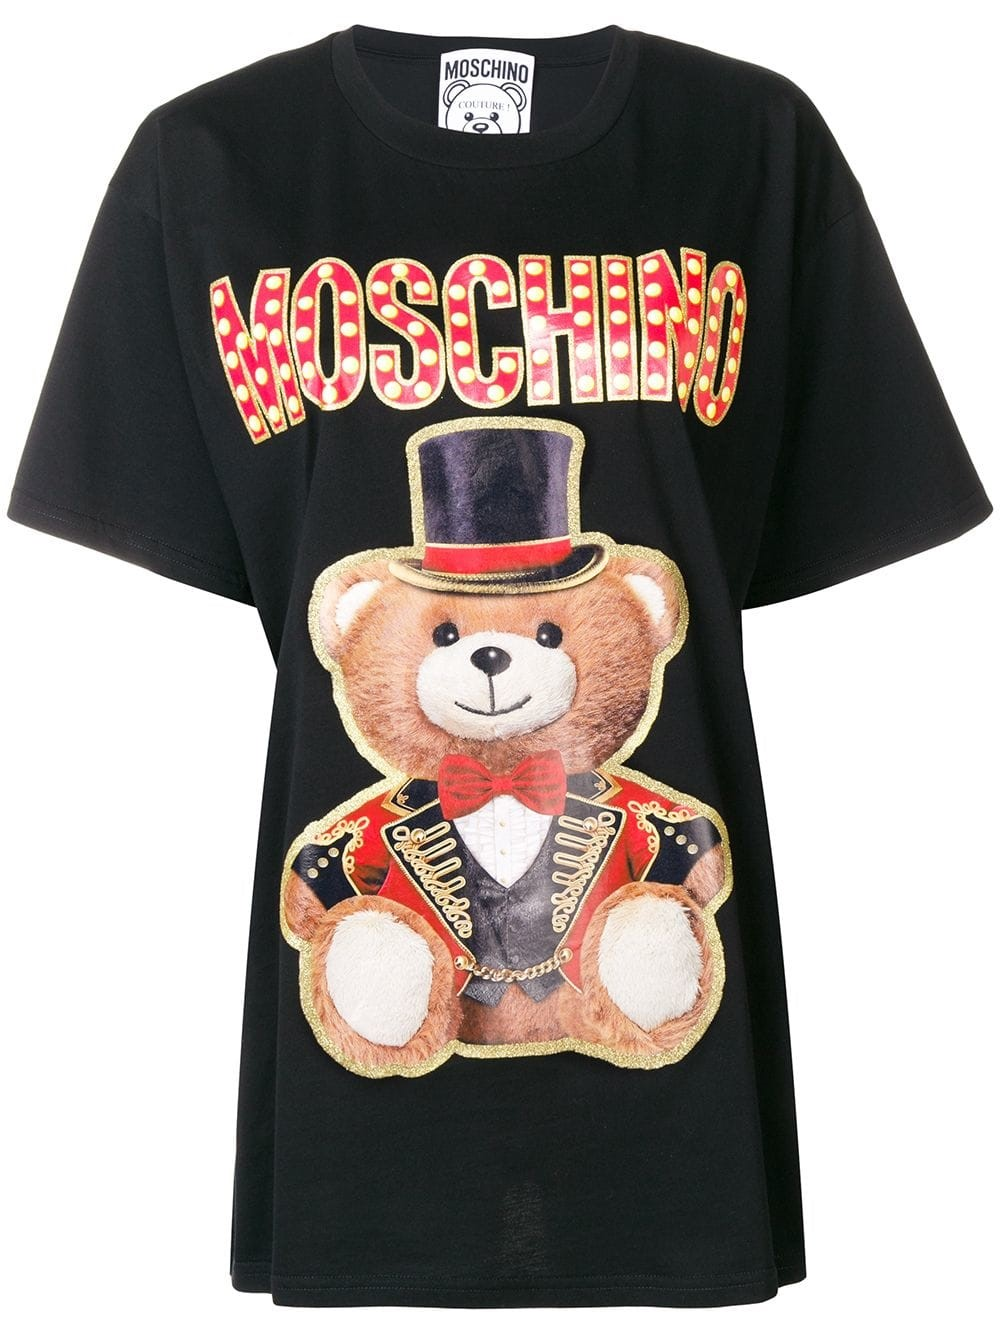 6be1b154 moschino CIRCUS PRINT T-SHIRT available on montiboutique.com - 26290